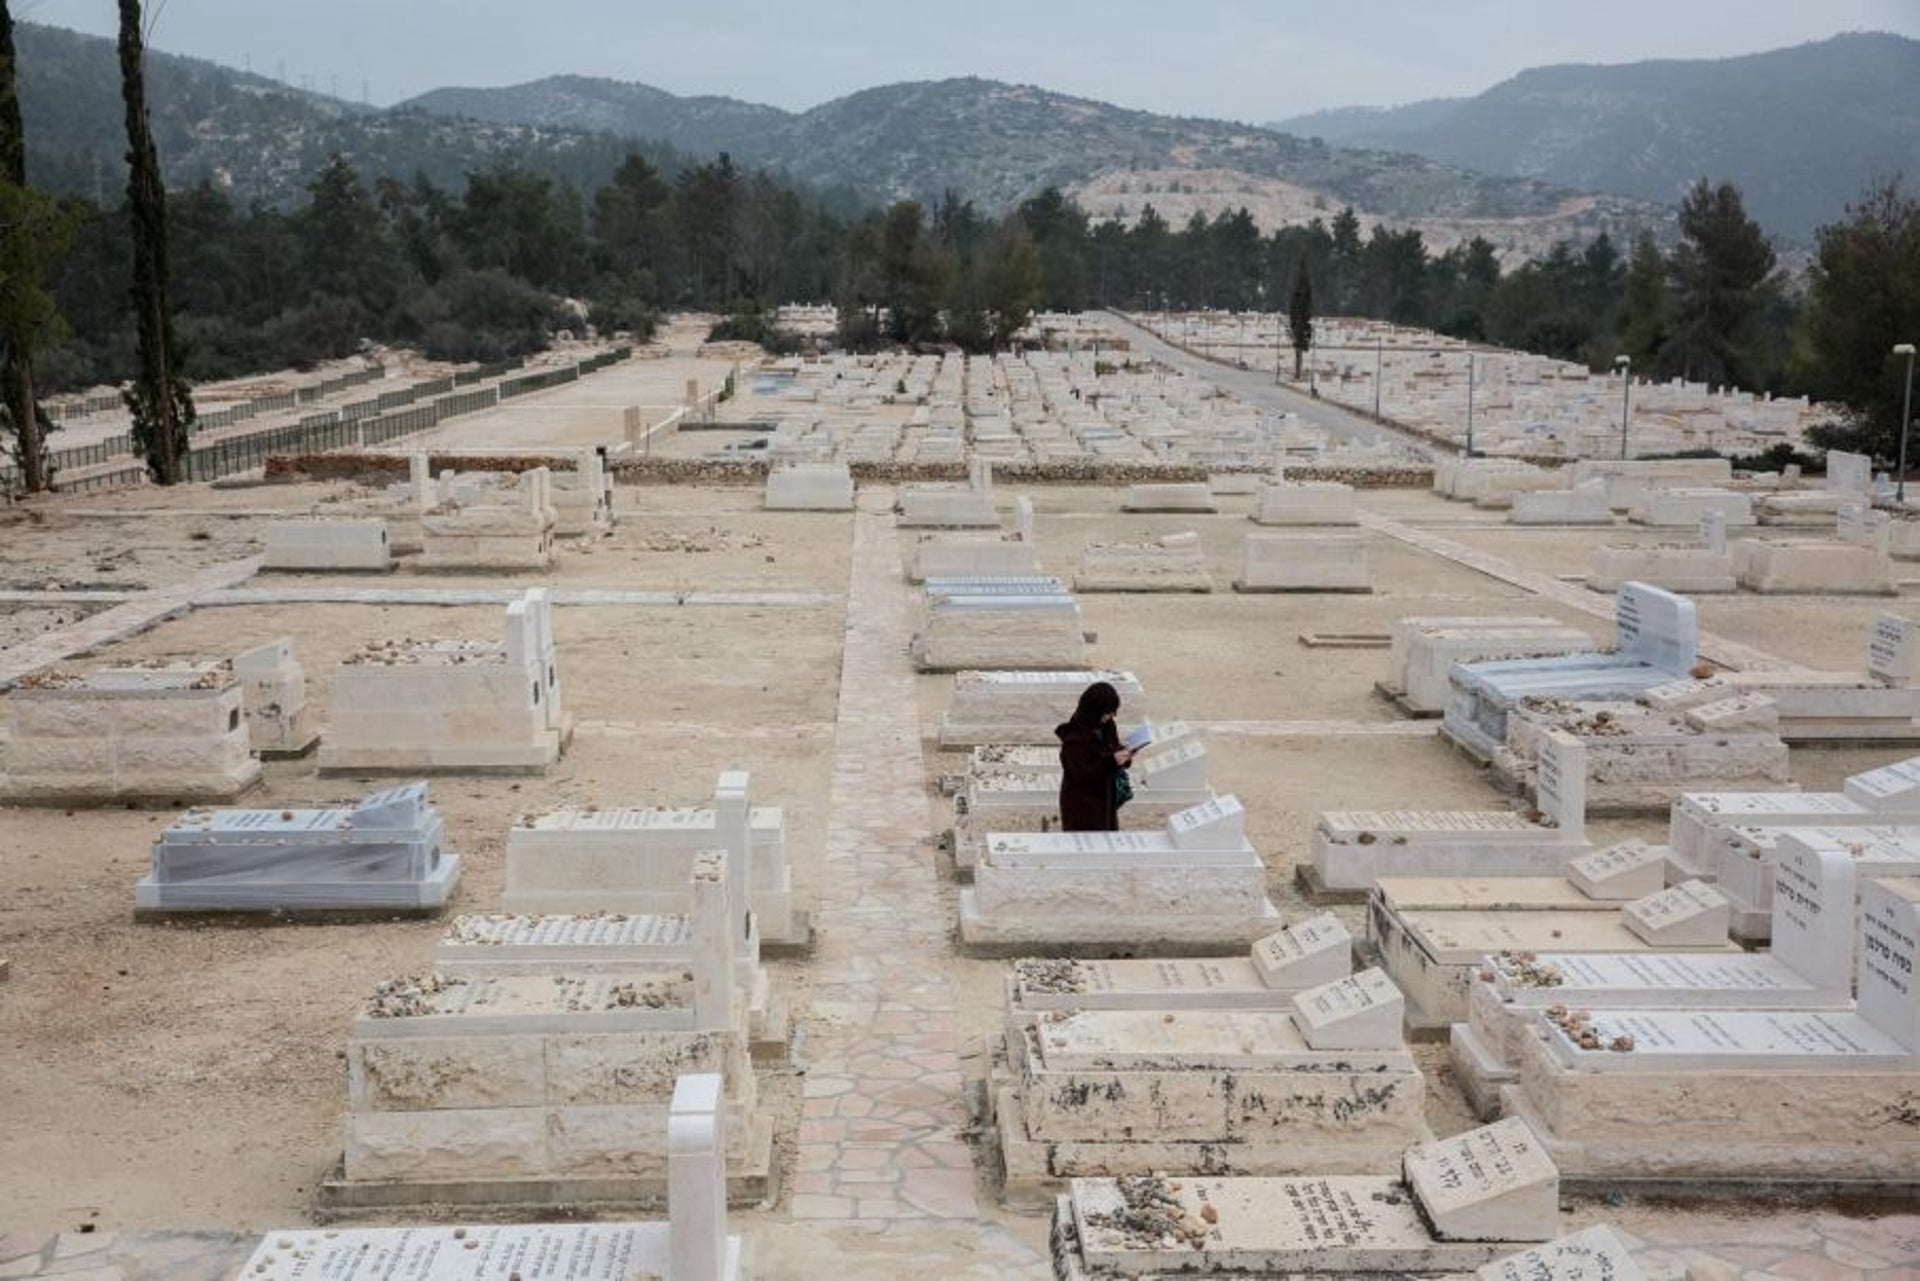 A Beit Shemesh cemetery where many Jews from abroad buy plots in advance, January 2017.